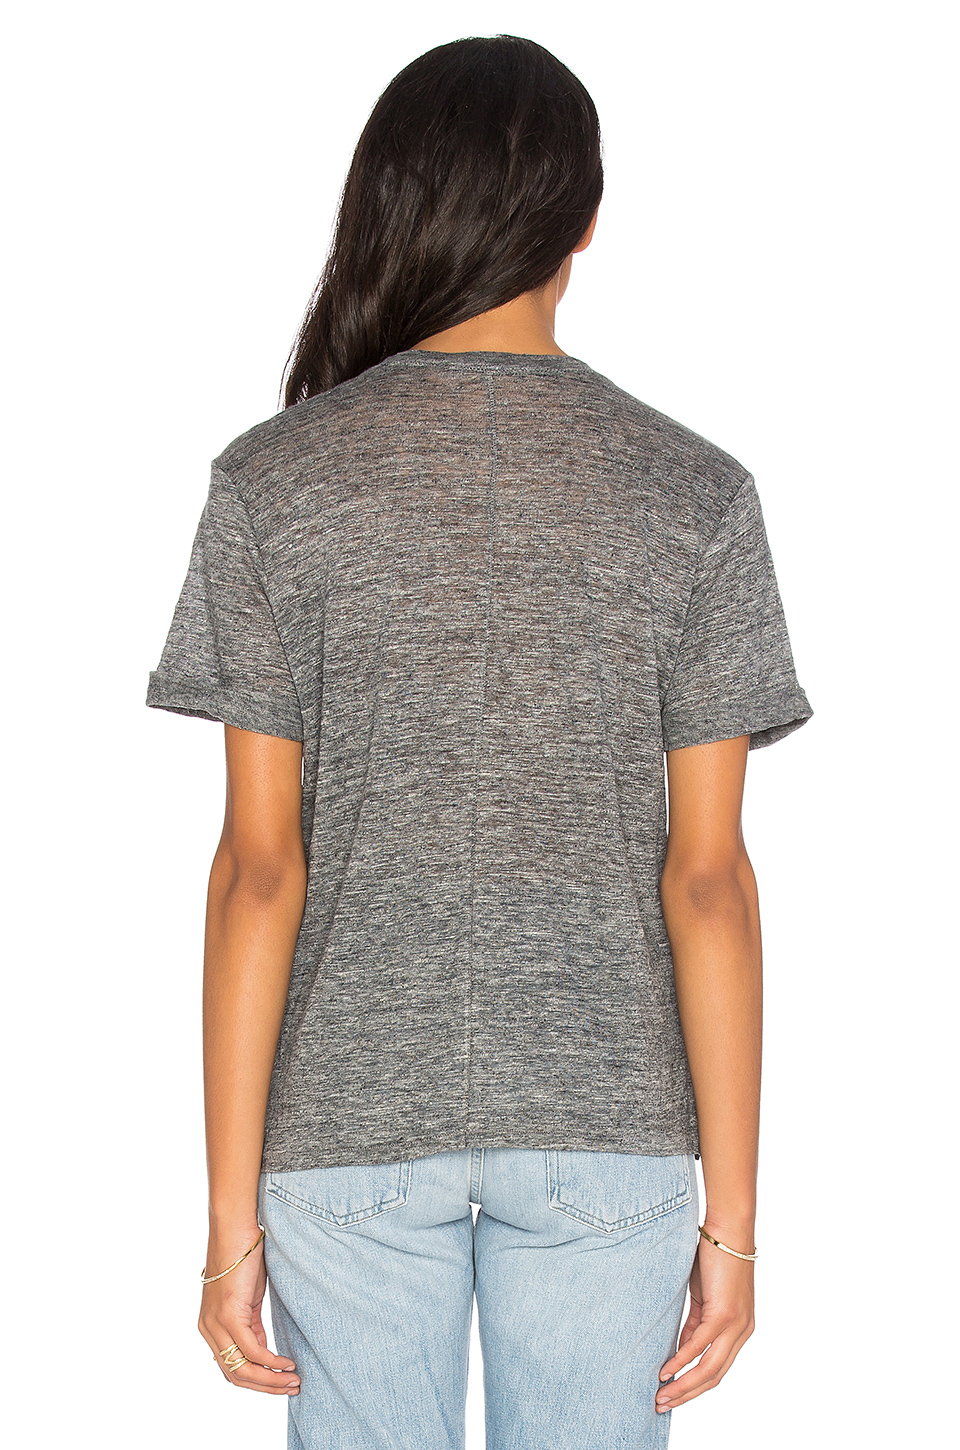 Michael stars crew neck tee in gray lyst for Michael stars tee shirts